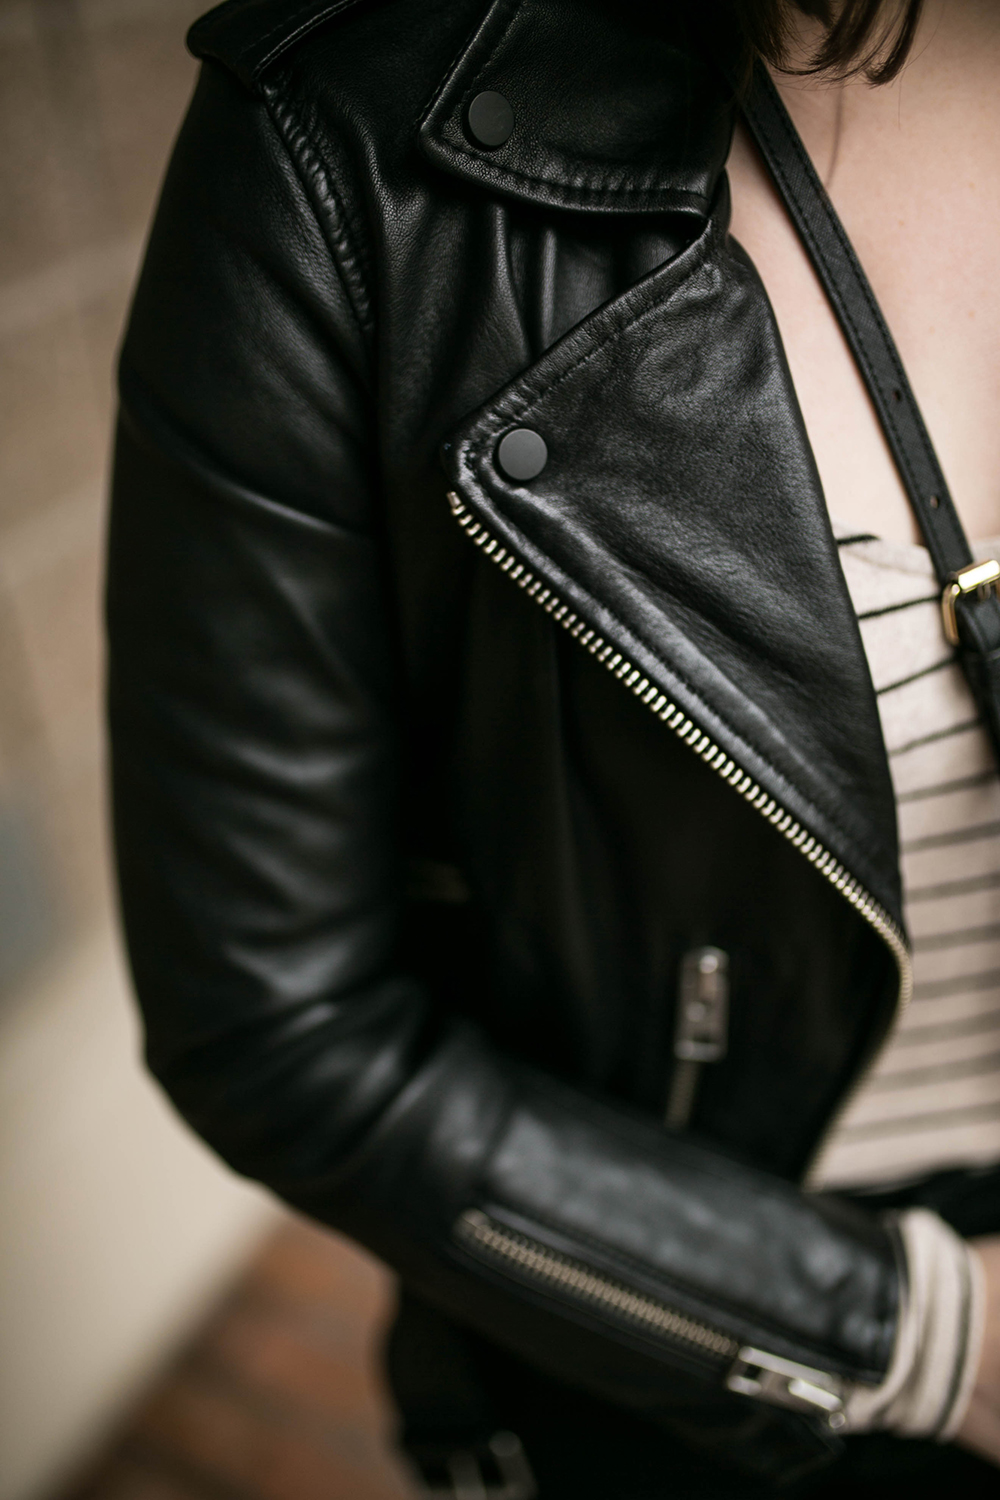 All Saints Balfern Leather Biker Jacket - Leather jacket outfit